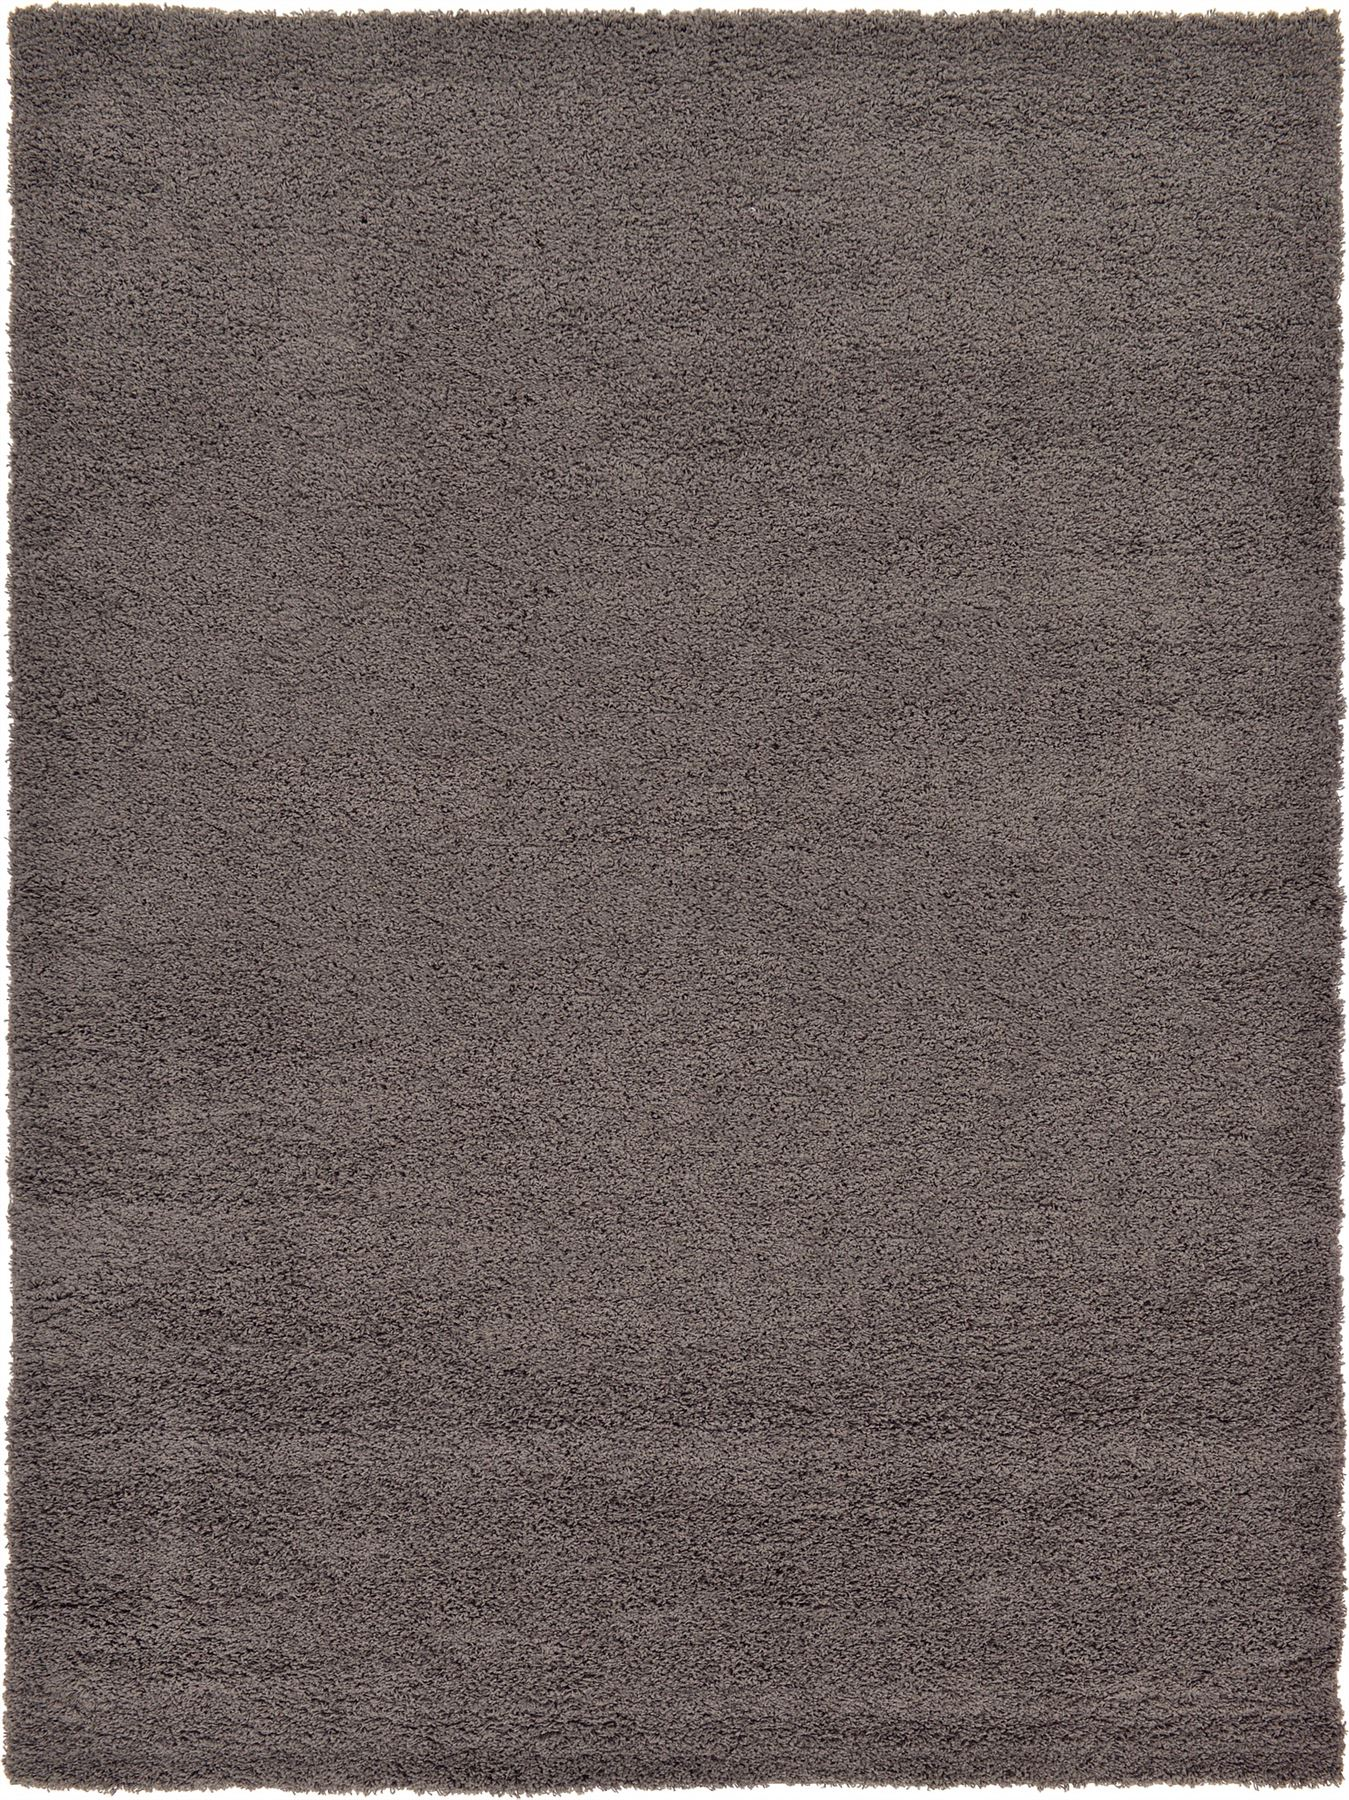 granite shag luxury oslo shaggy rug silver floorsome taupe plush mix products